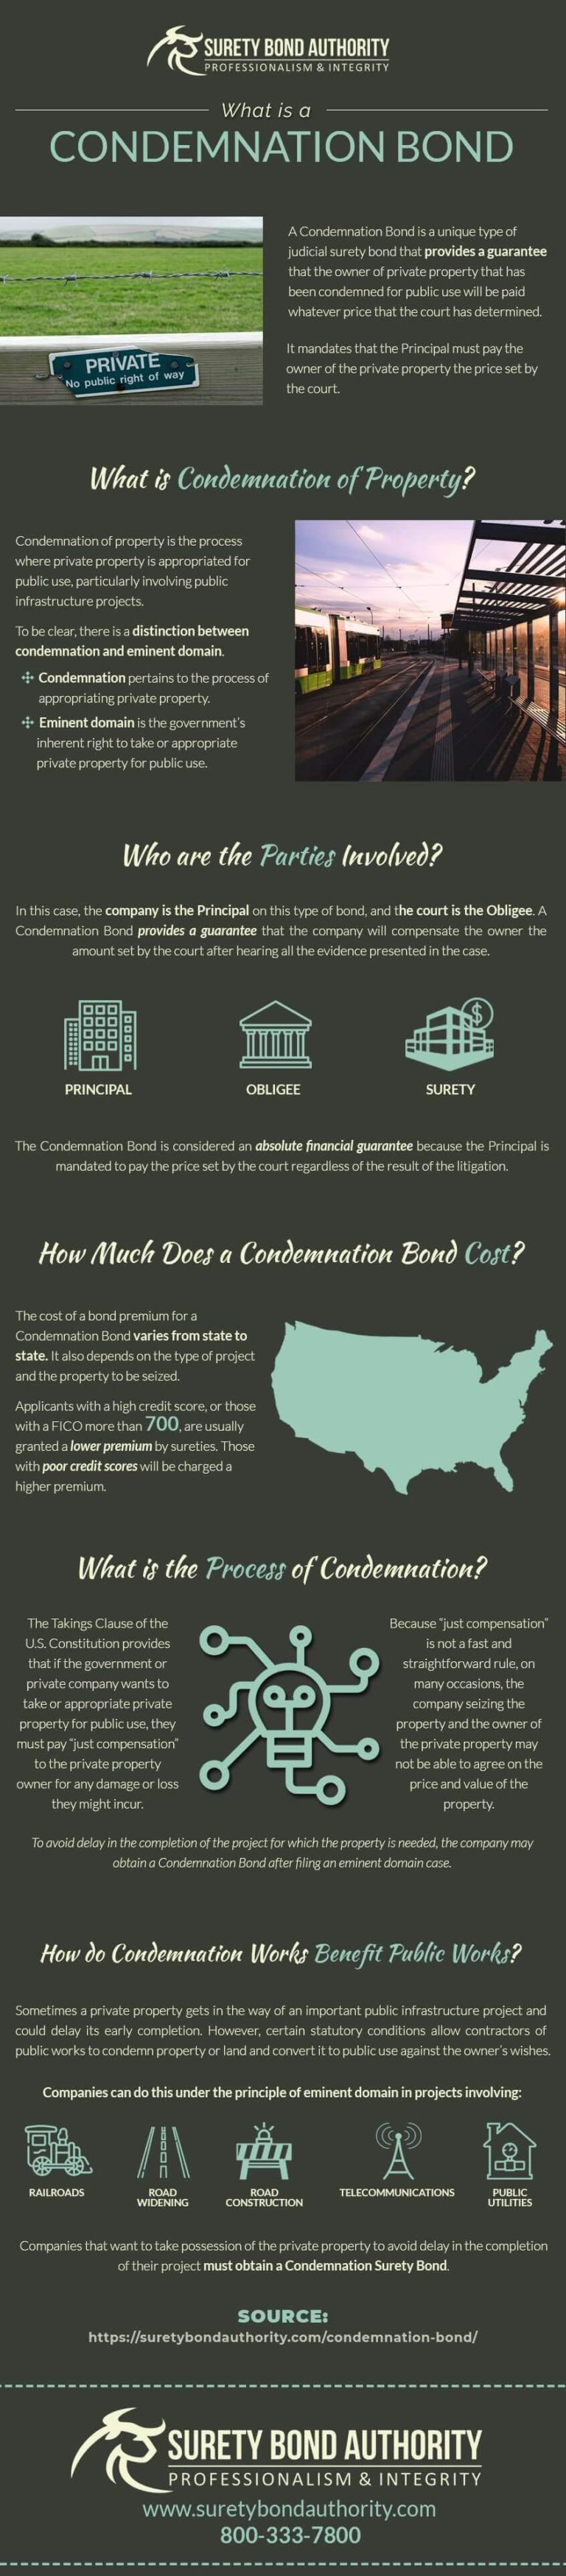 Condemnation Bond Infographic